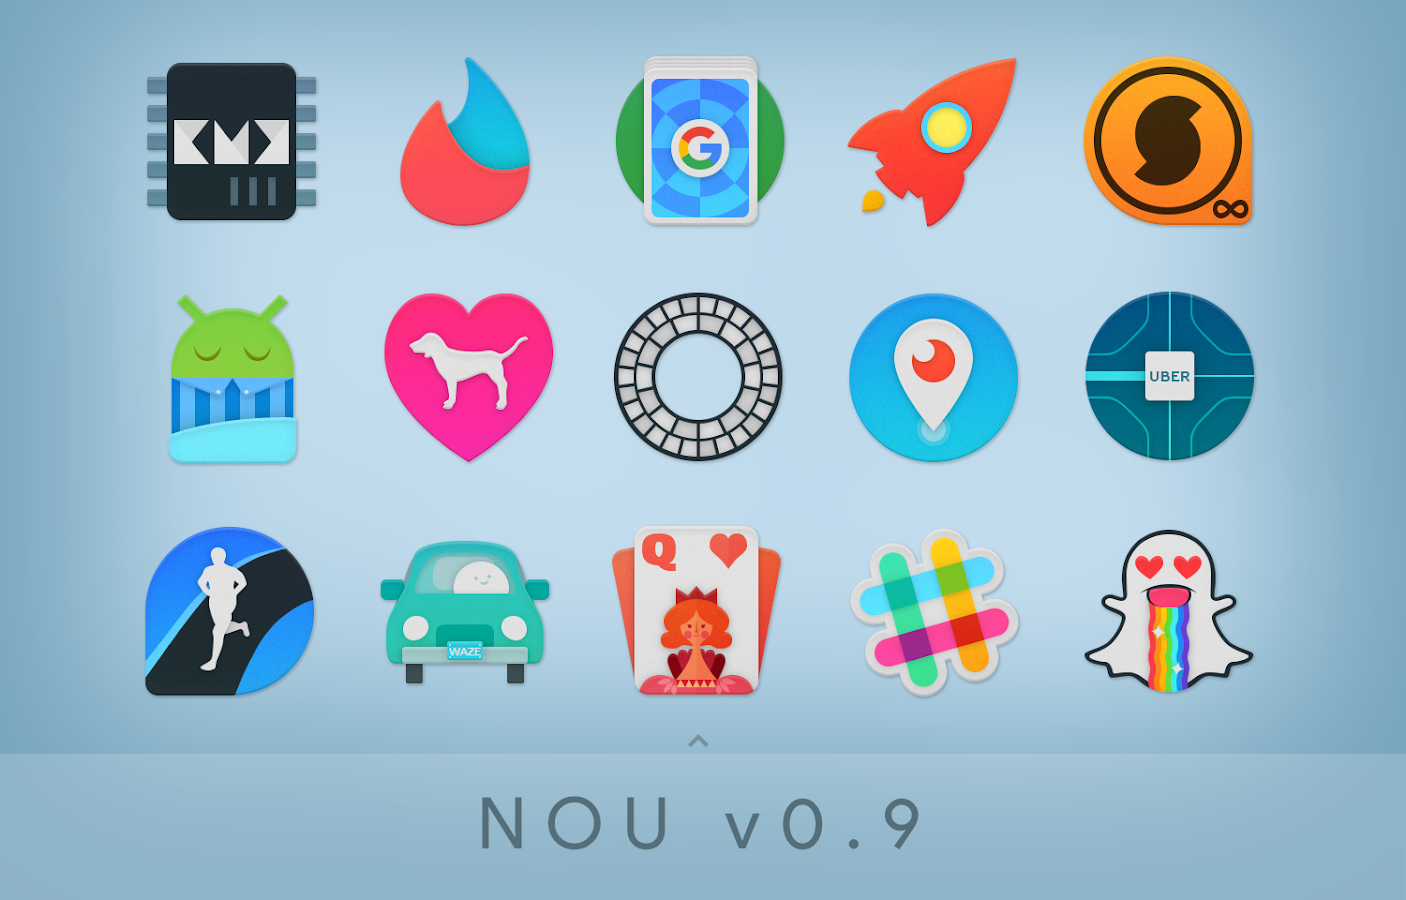 NOU - Icon Pack Screenshot 1